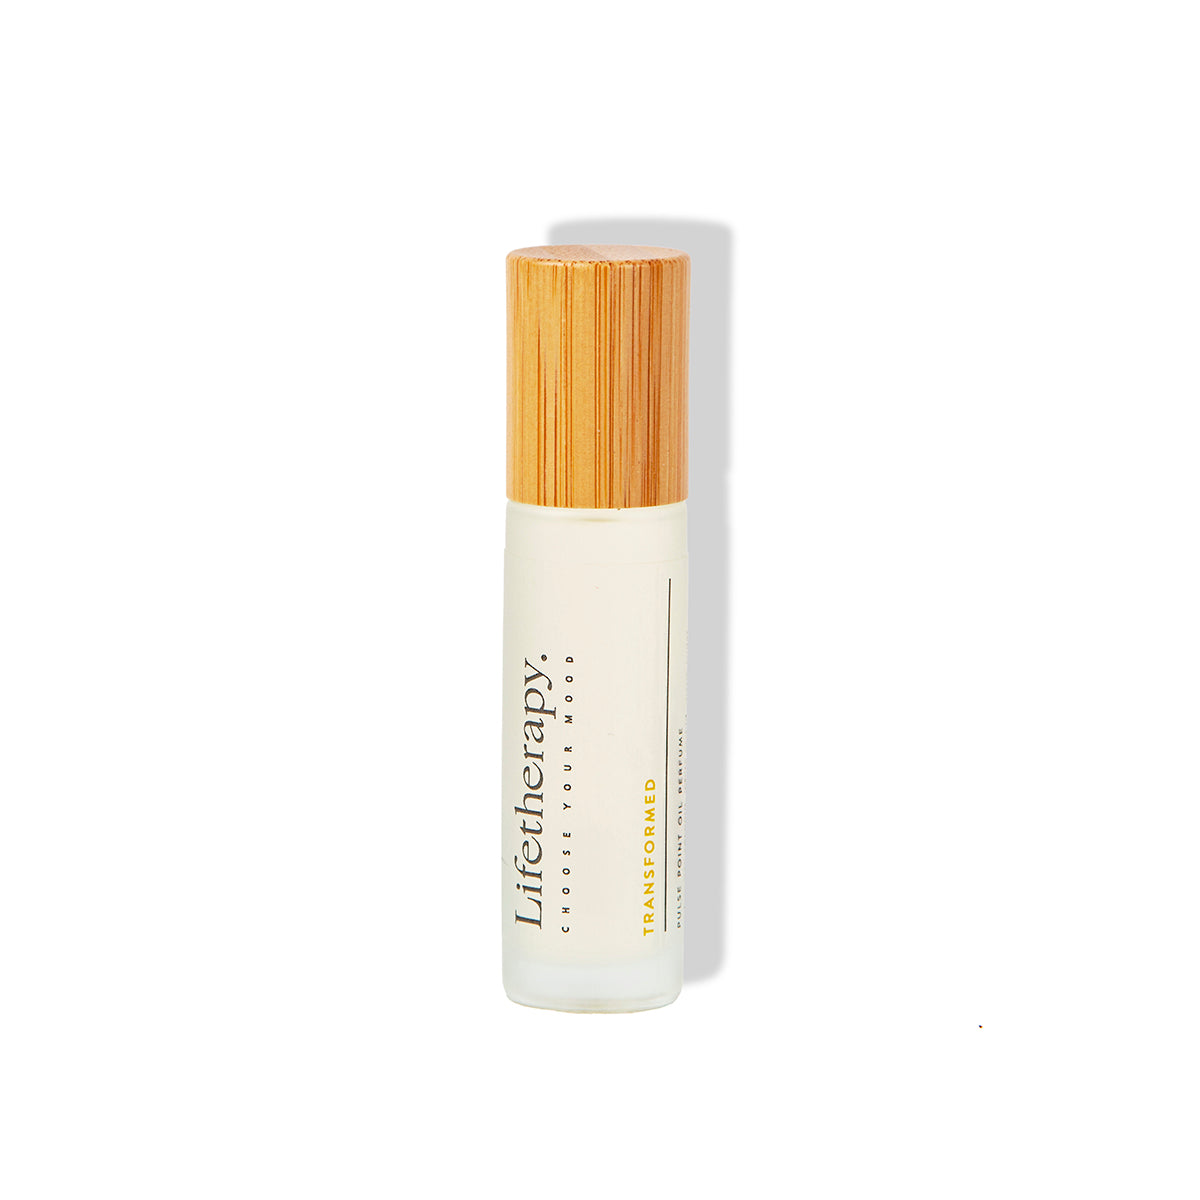 Transformed Pulse Point Oil Roll-on Perfume